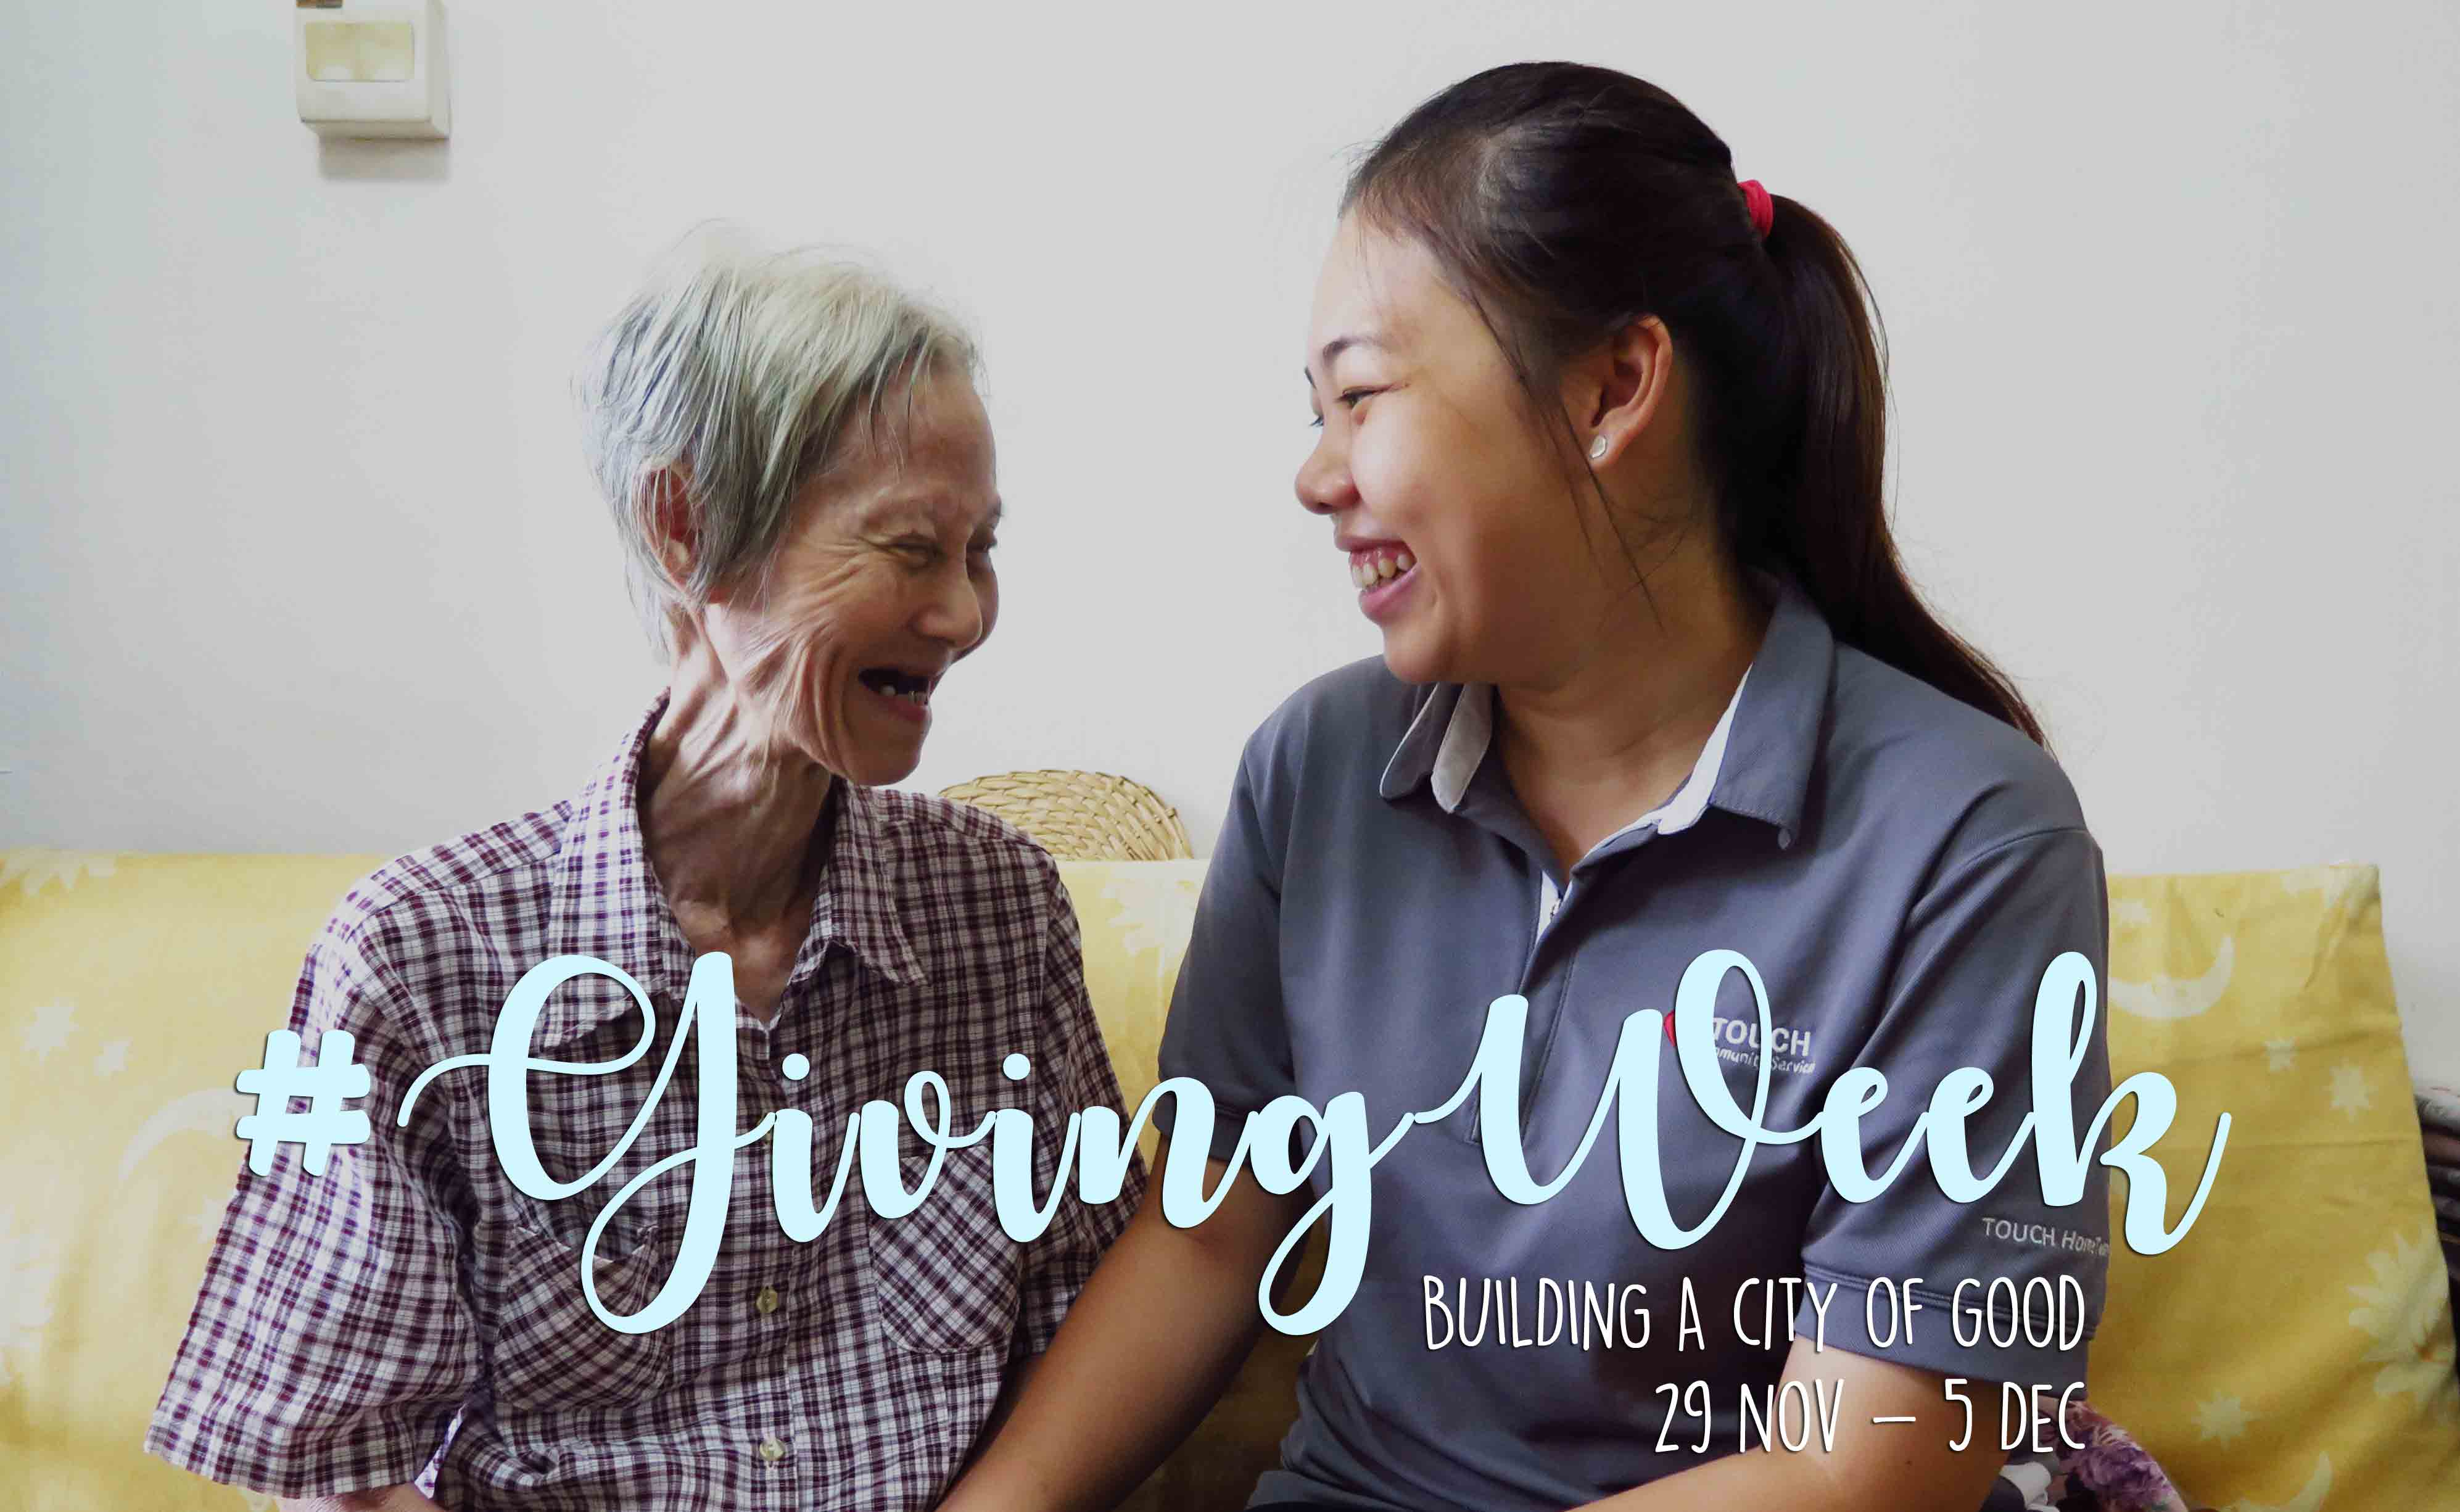 #GivingWeek: Make this a meaningful week!